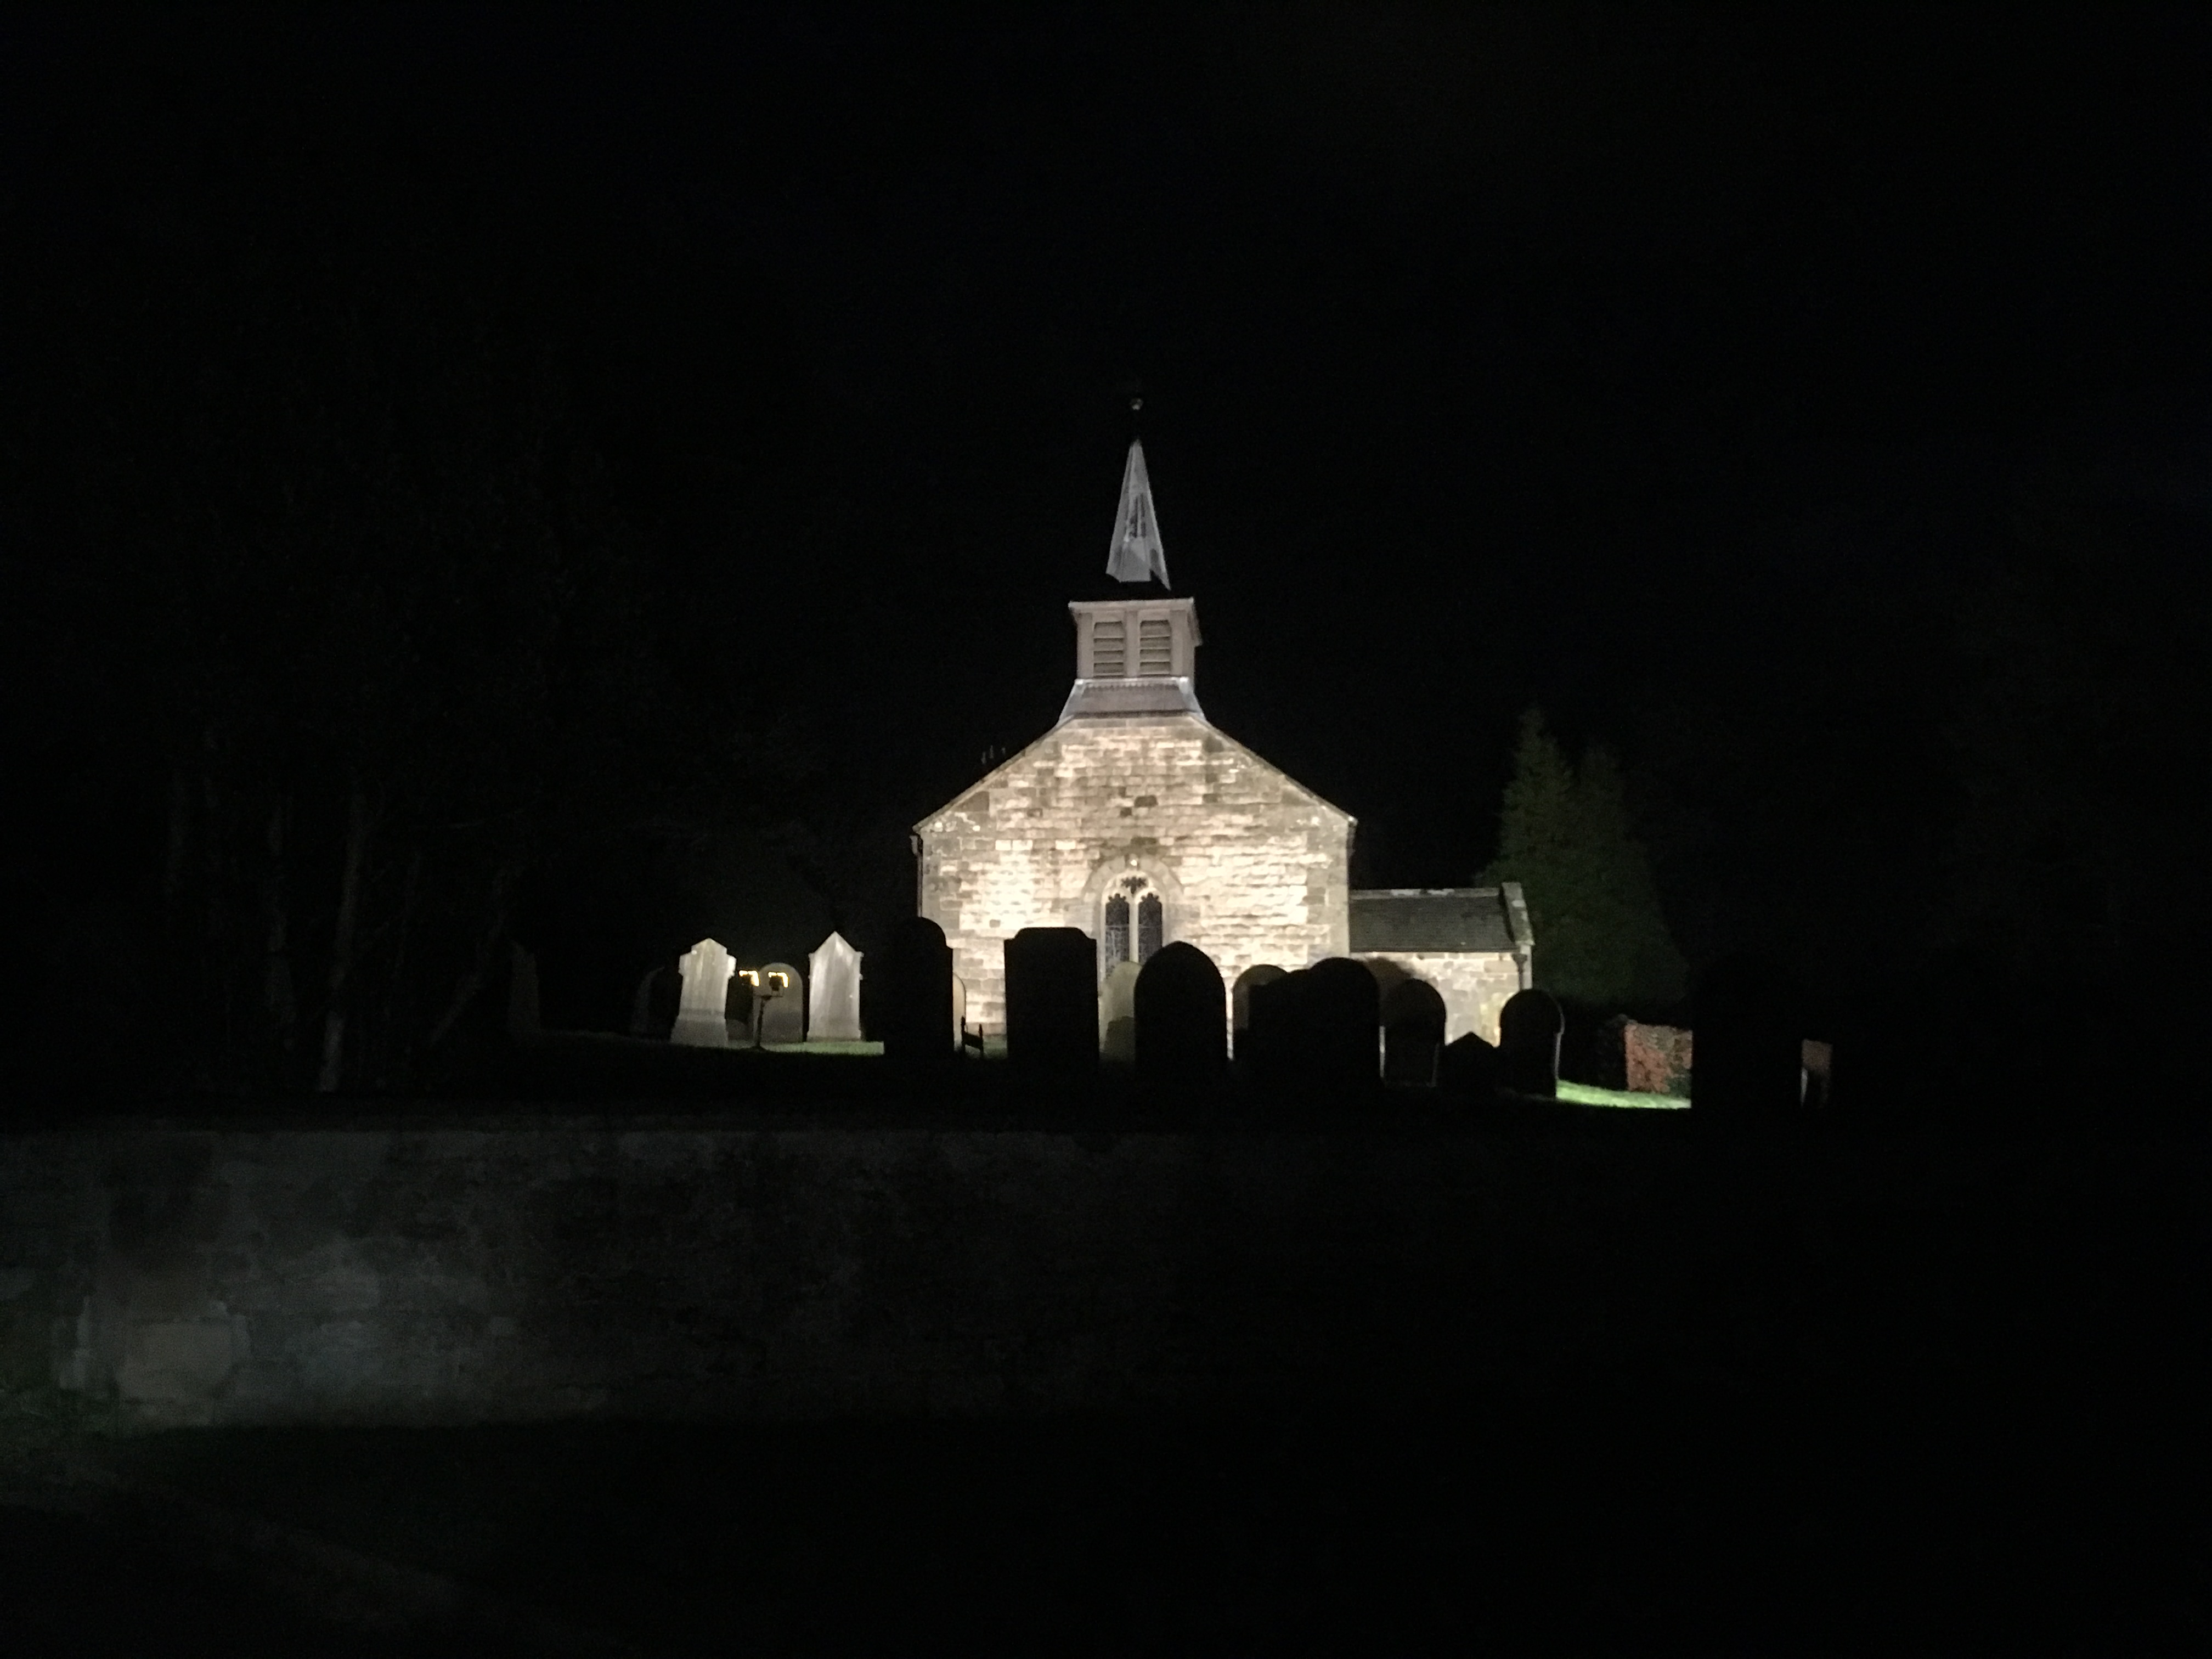 The village church by night